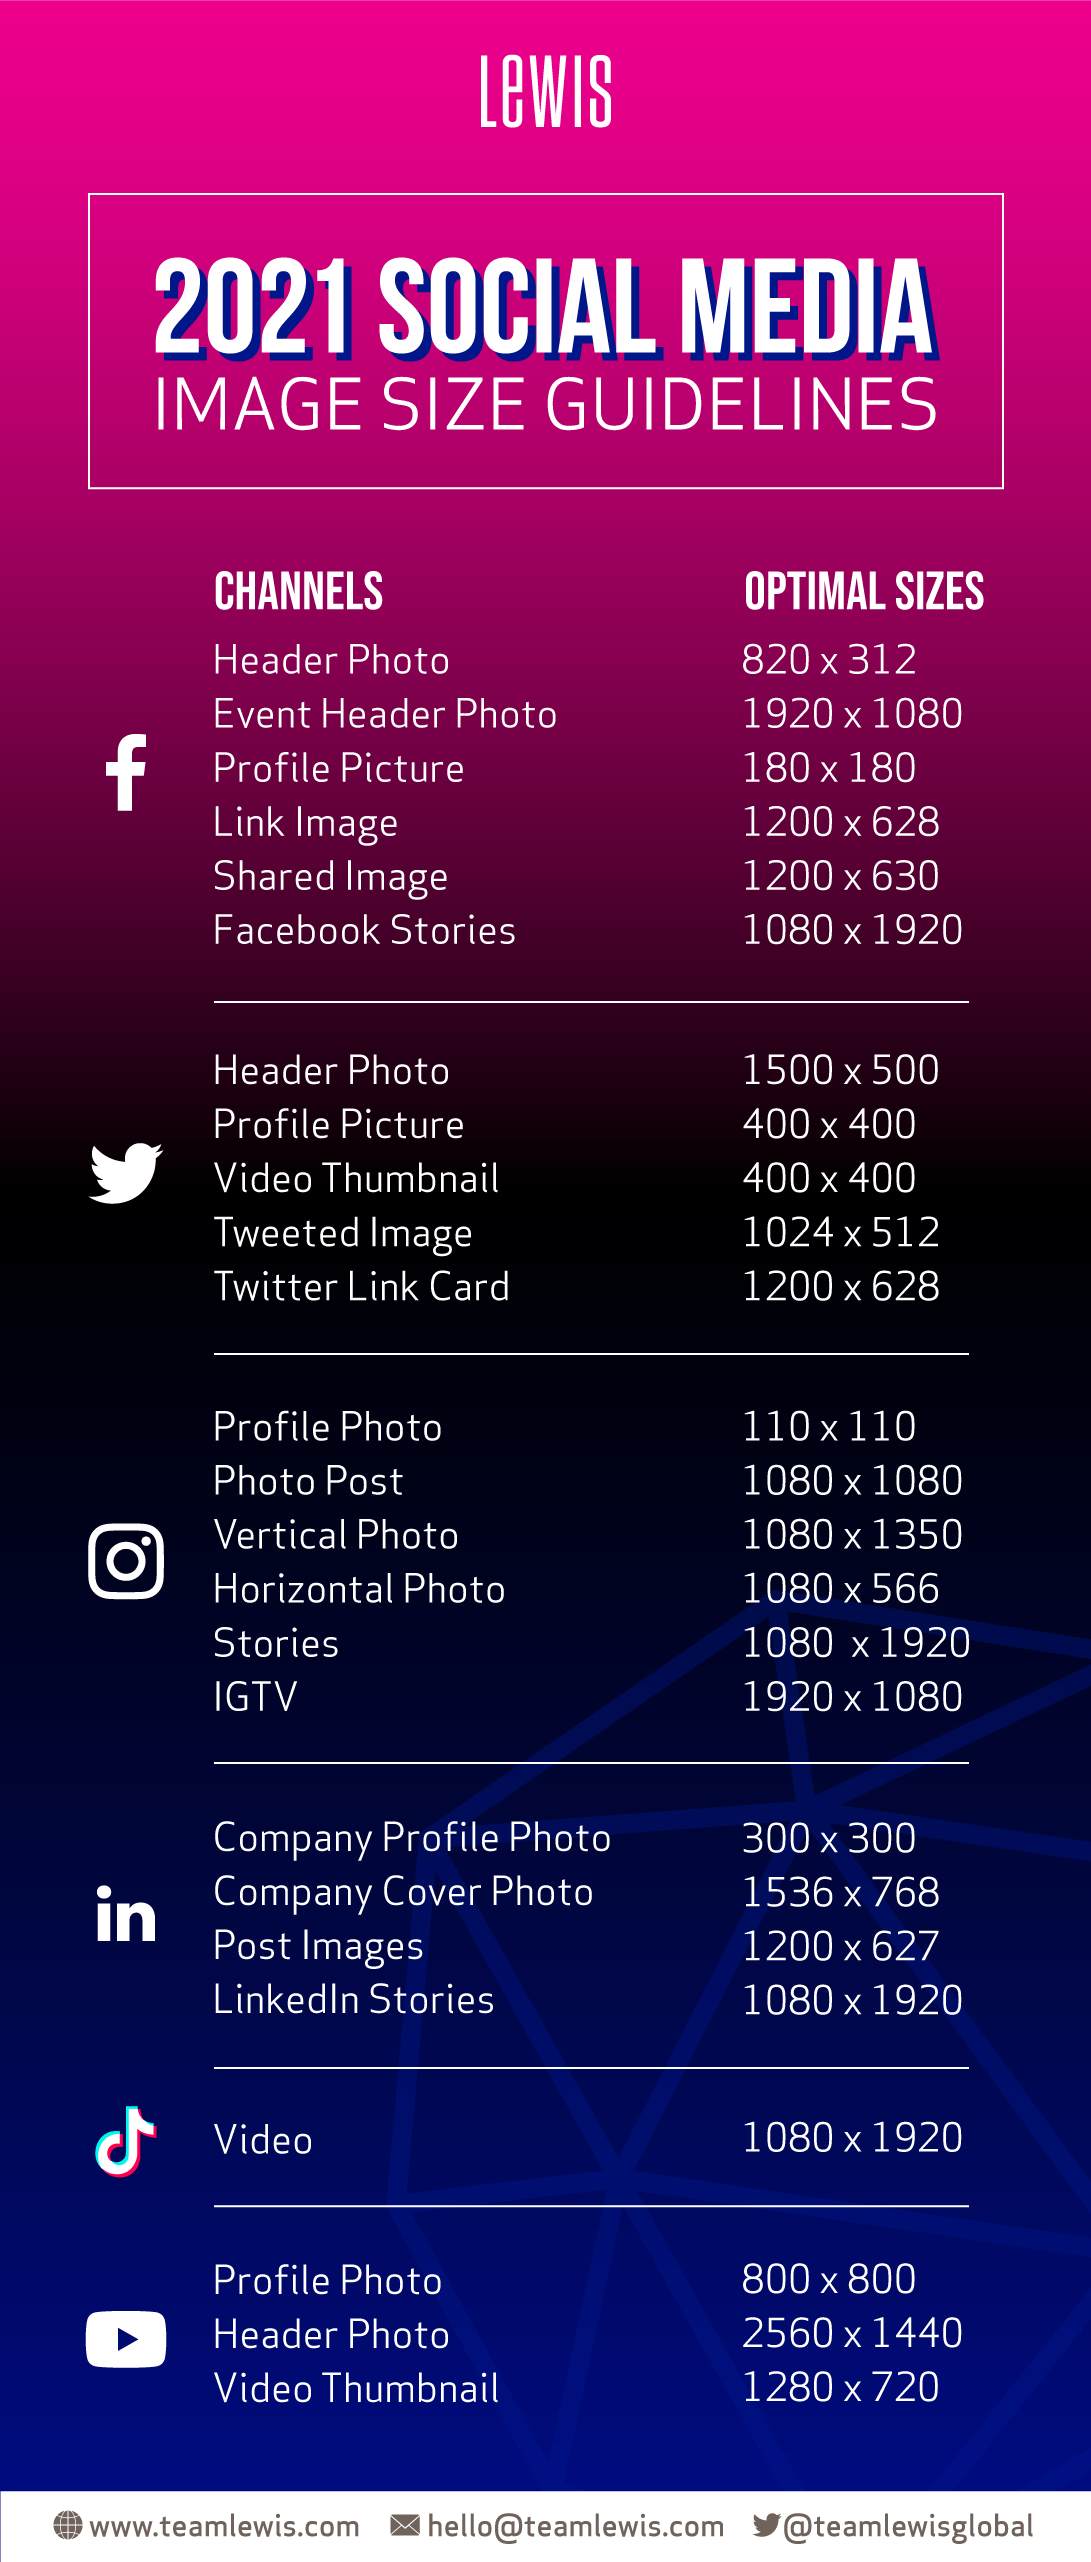 Social Media Image Guidelines Infographic